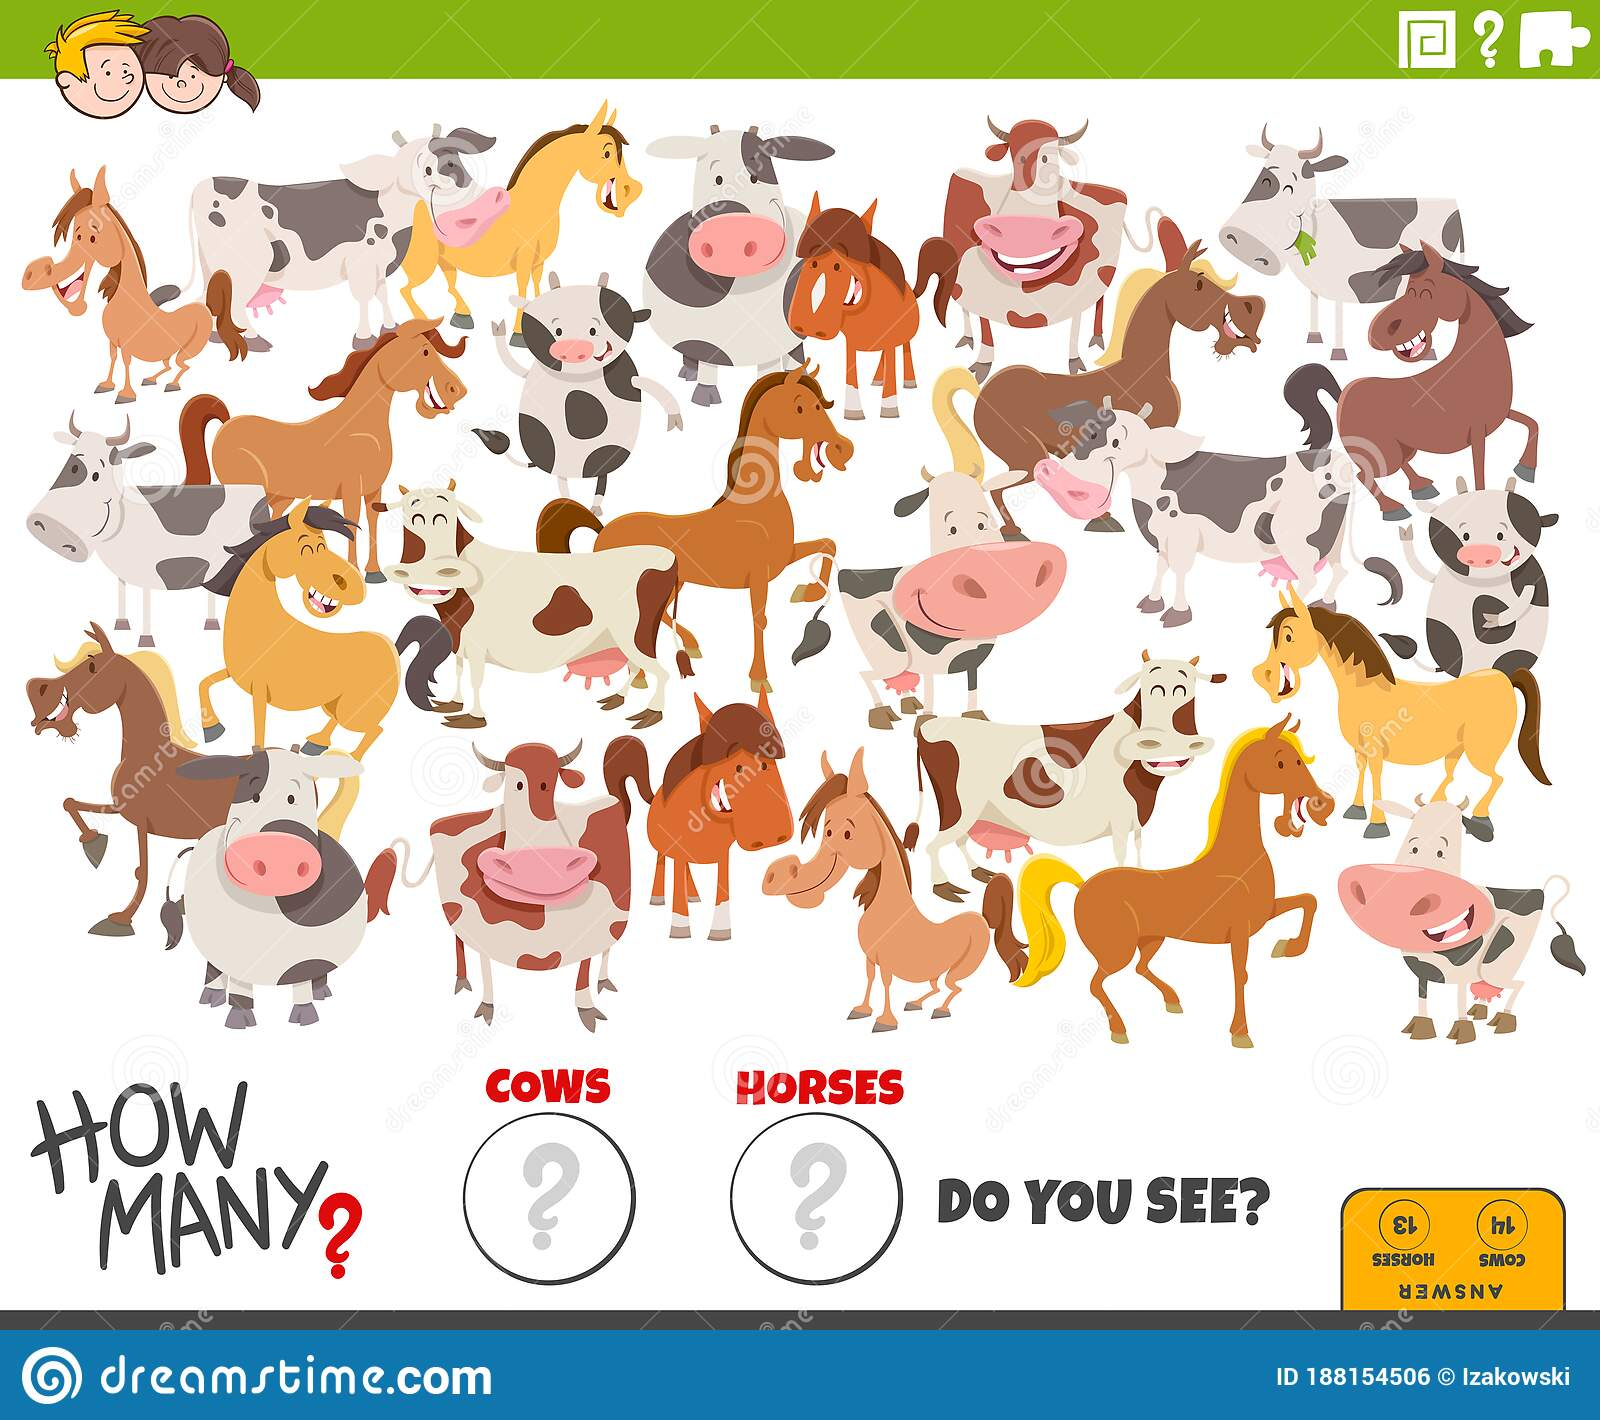 How Many Cows And Horses Educational Task For Children